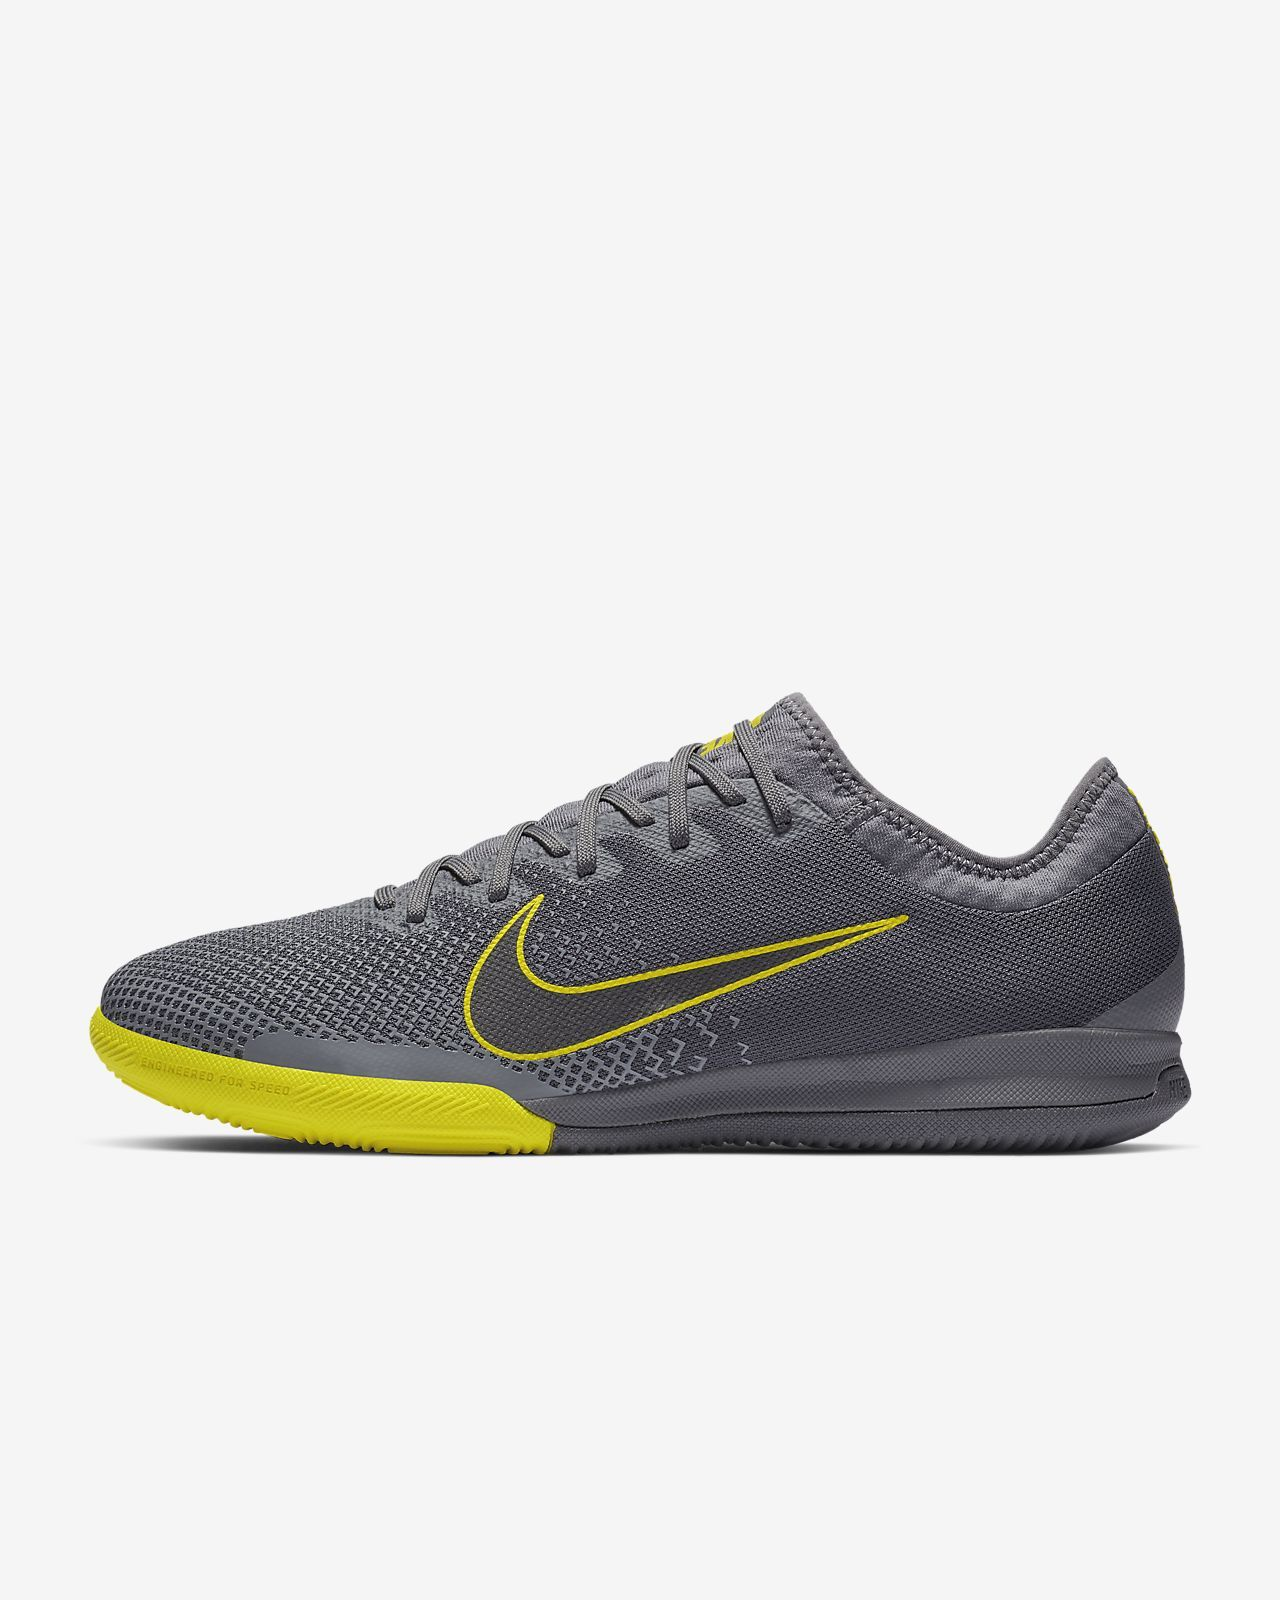 33ce1aa5d6690 Find the Converse Nexus x Nike Zoom Air Low Top Men s Shoe at Nike.com.  Enjoy free shipping and returns with NikePlus.